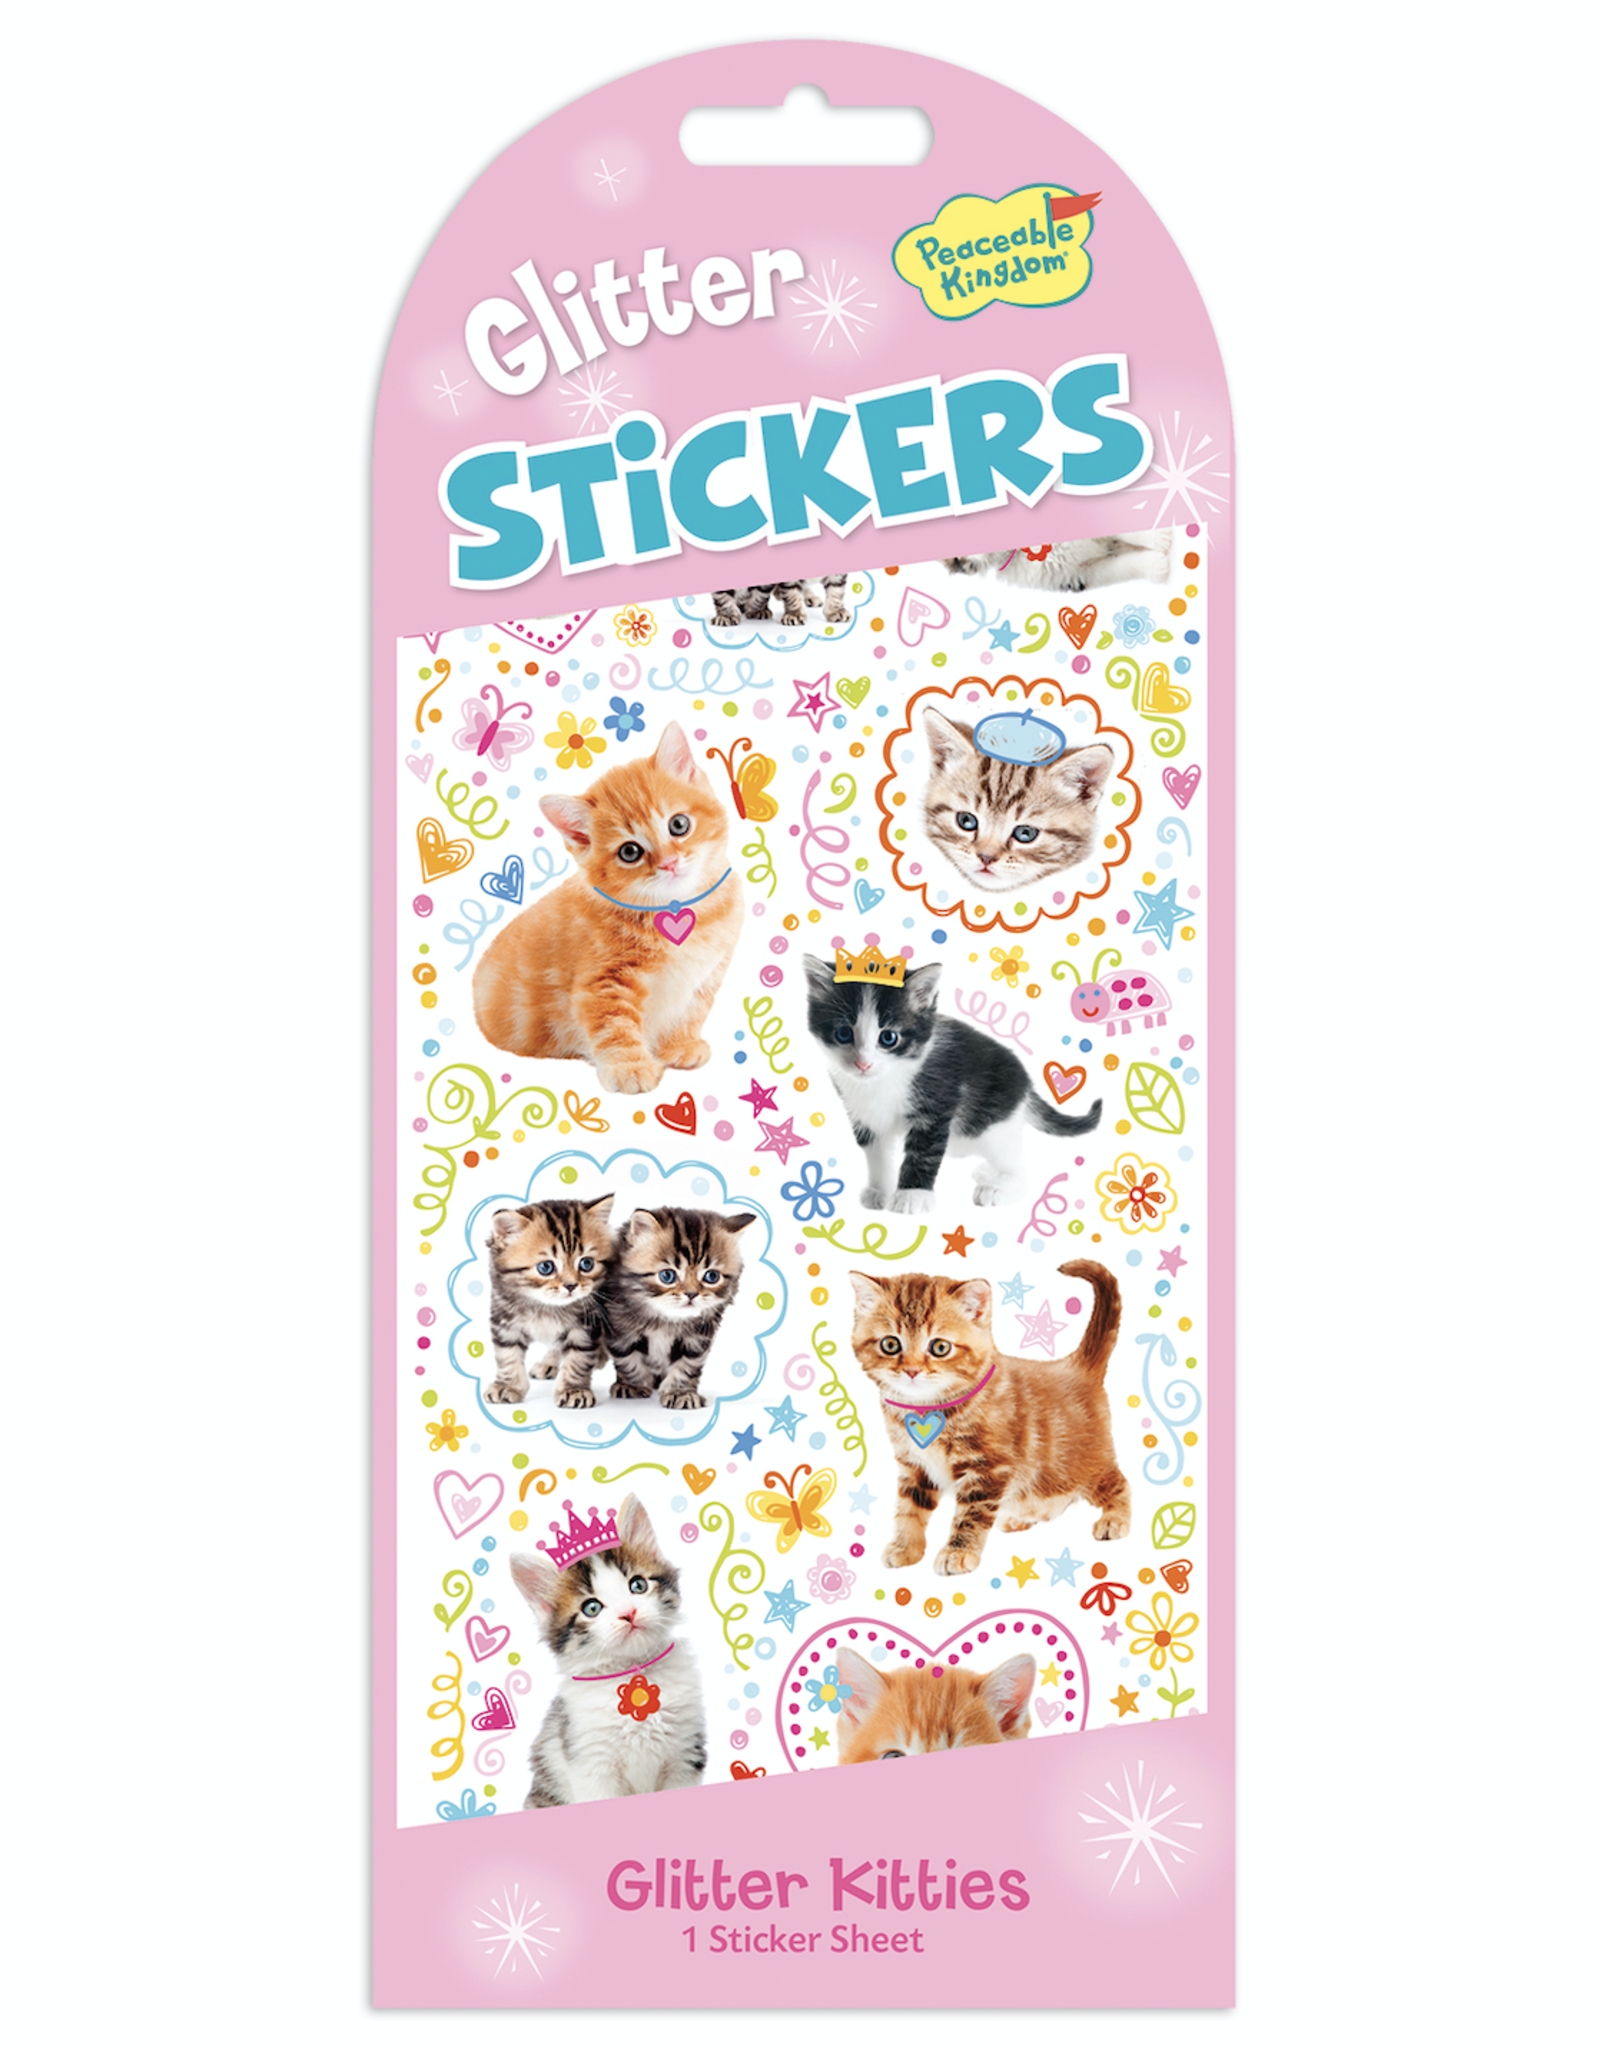 Peaceable Kingdom Glitter Stickers: Kitties